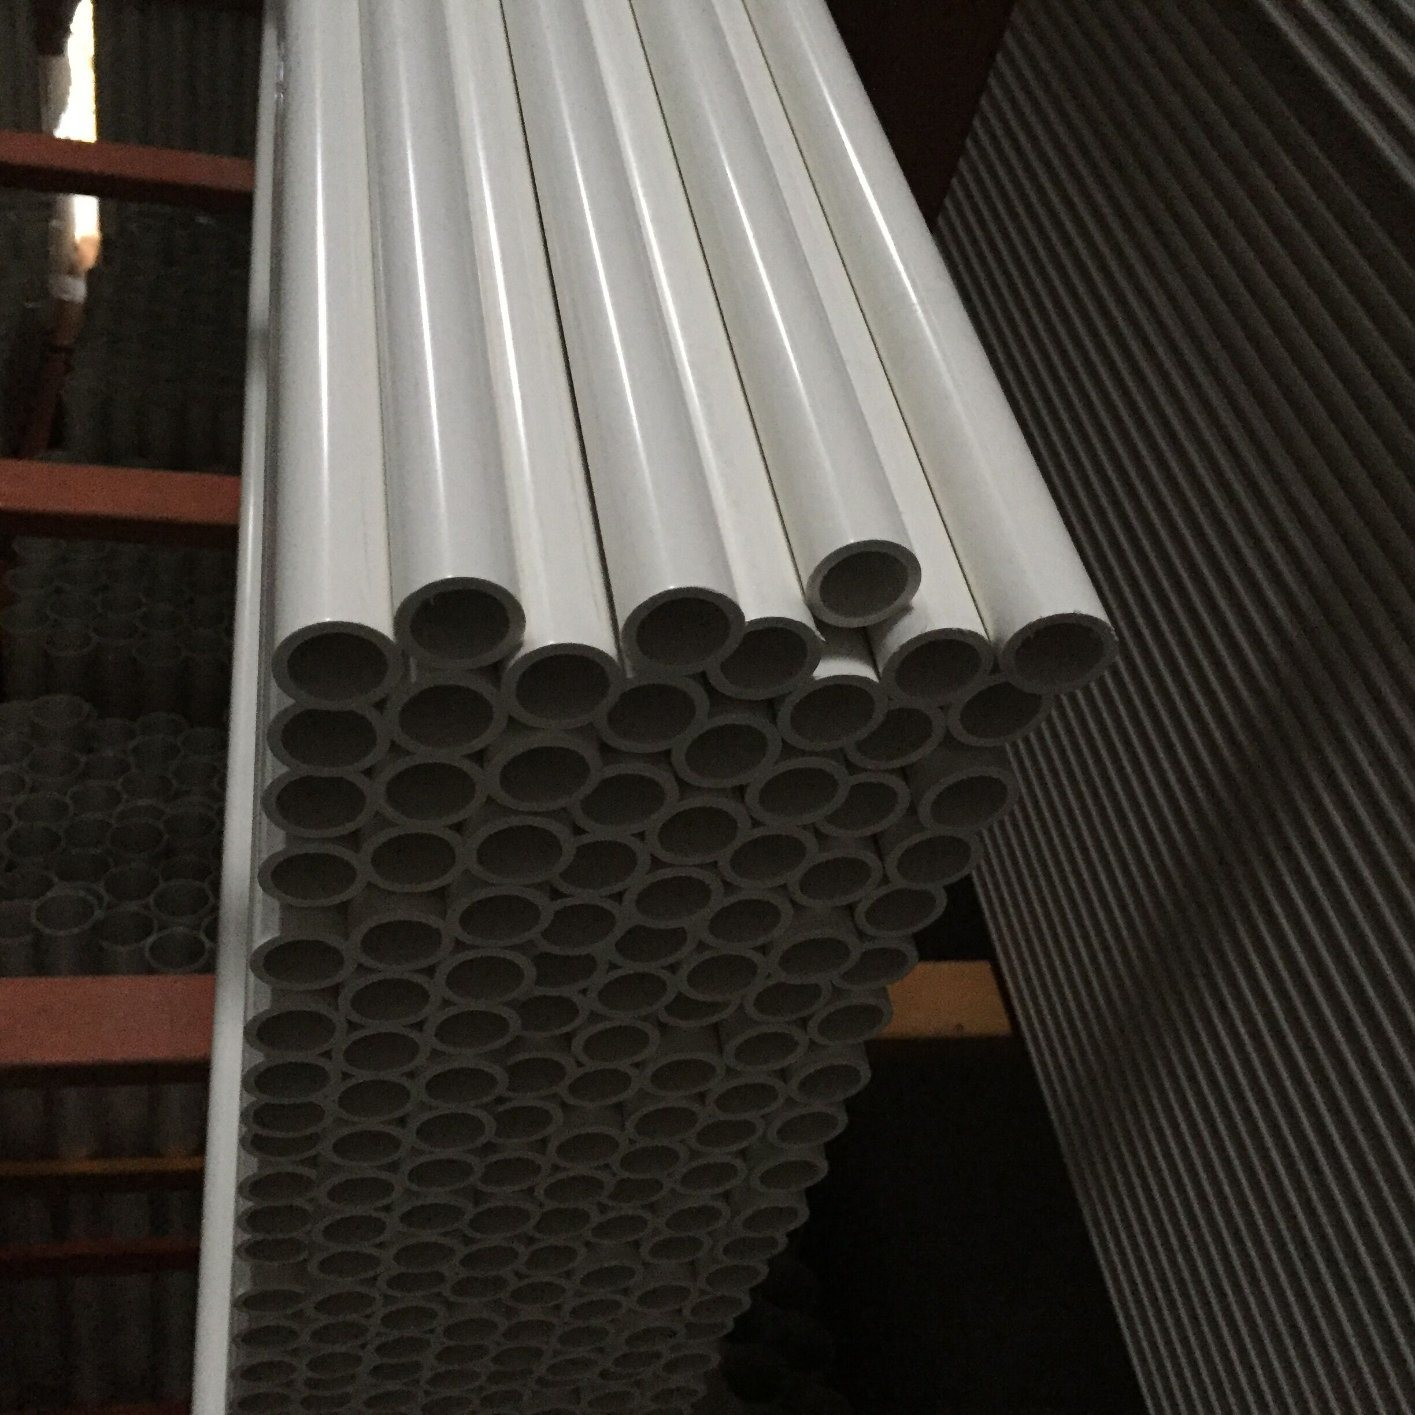 ASTM D1785 Sch40 PVC-U Potable Water Pipes and BS3505 Pressure Pipes for Cold Potable & China ASTM D1785 Sch40 PVC-U Potable Water Pipes and BS3505 Pressure ...